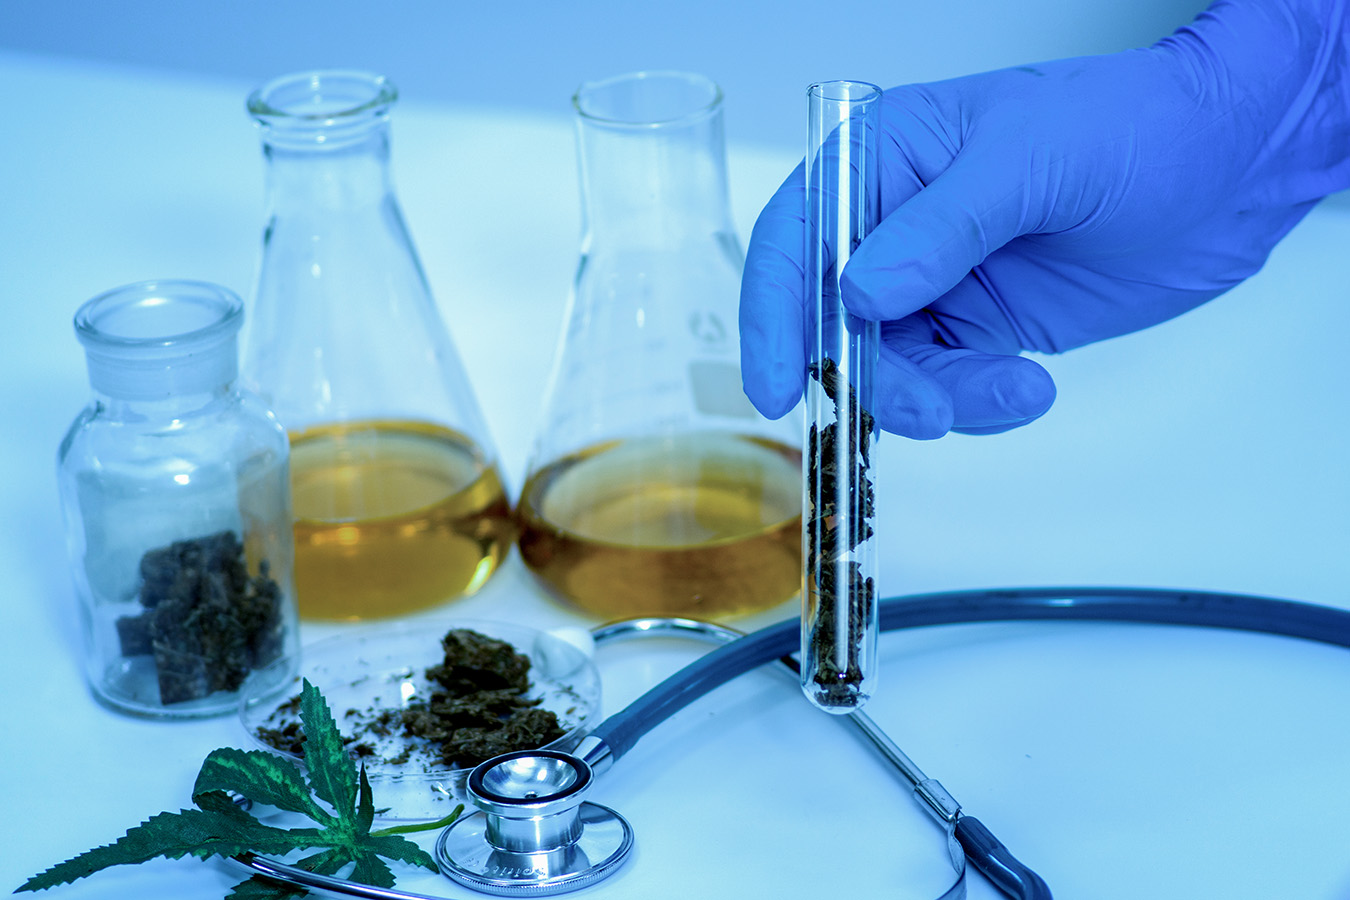 Herbal medicine cannabis in lab.